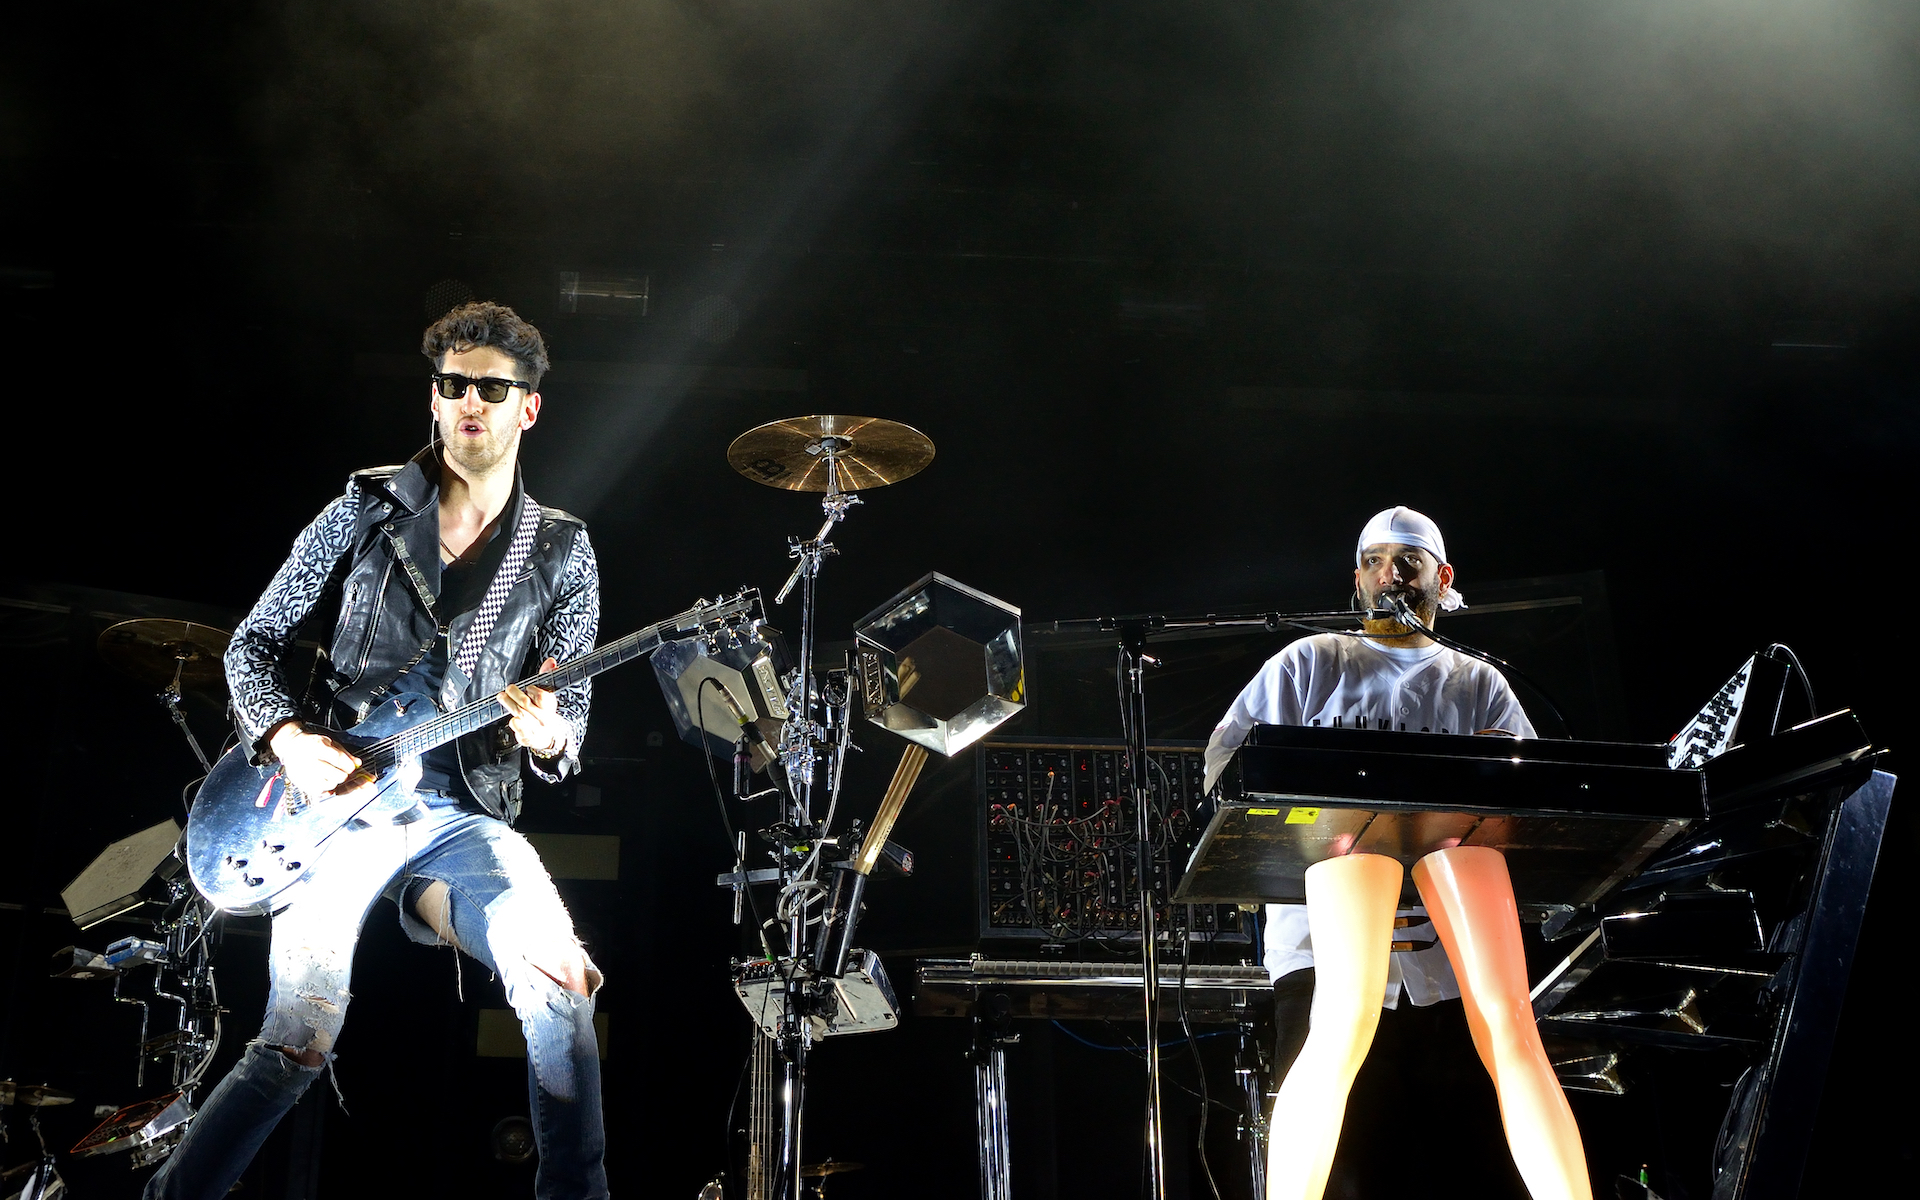 How Chromeo Built Their Sound